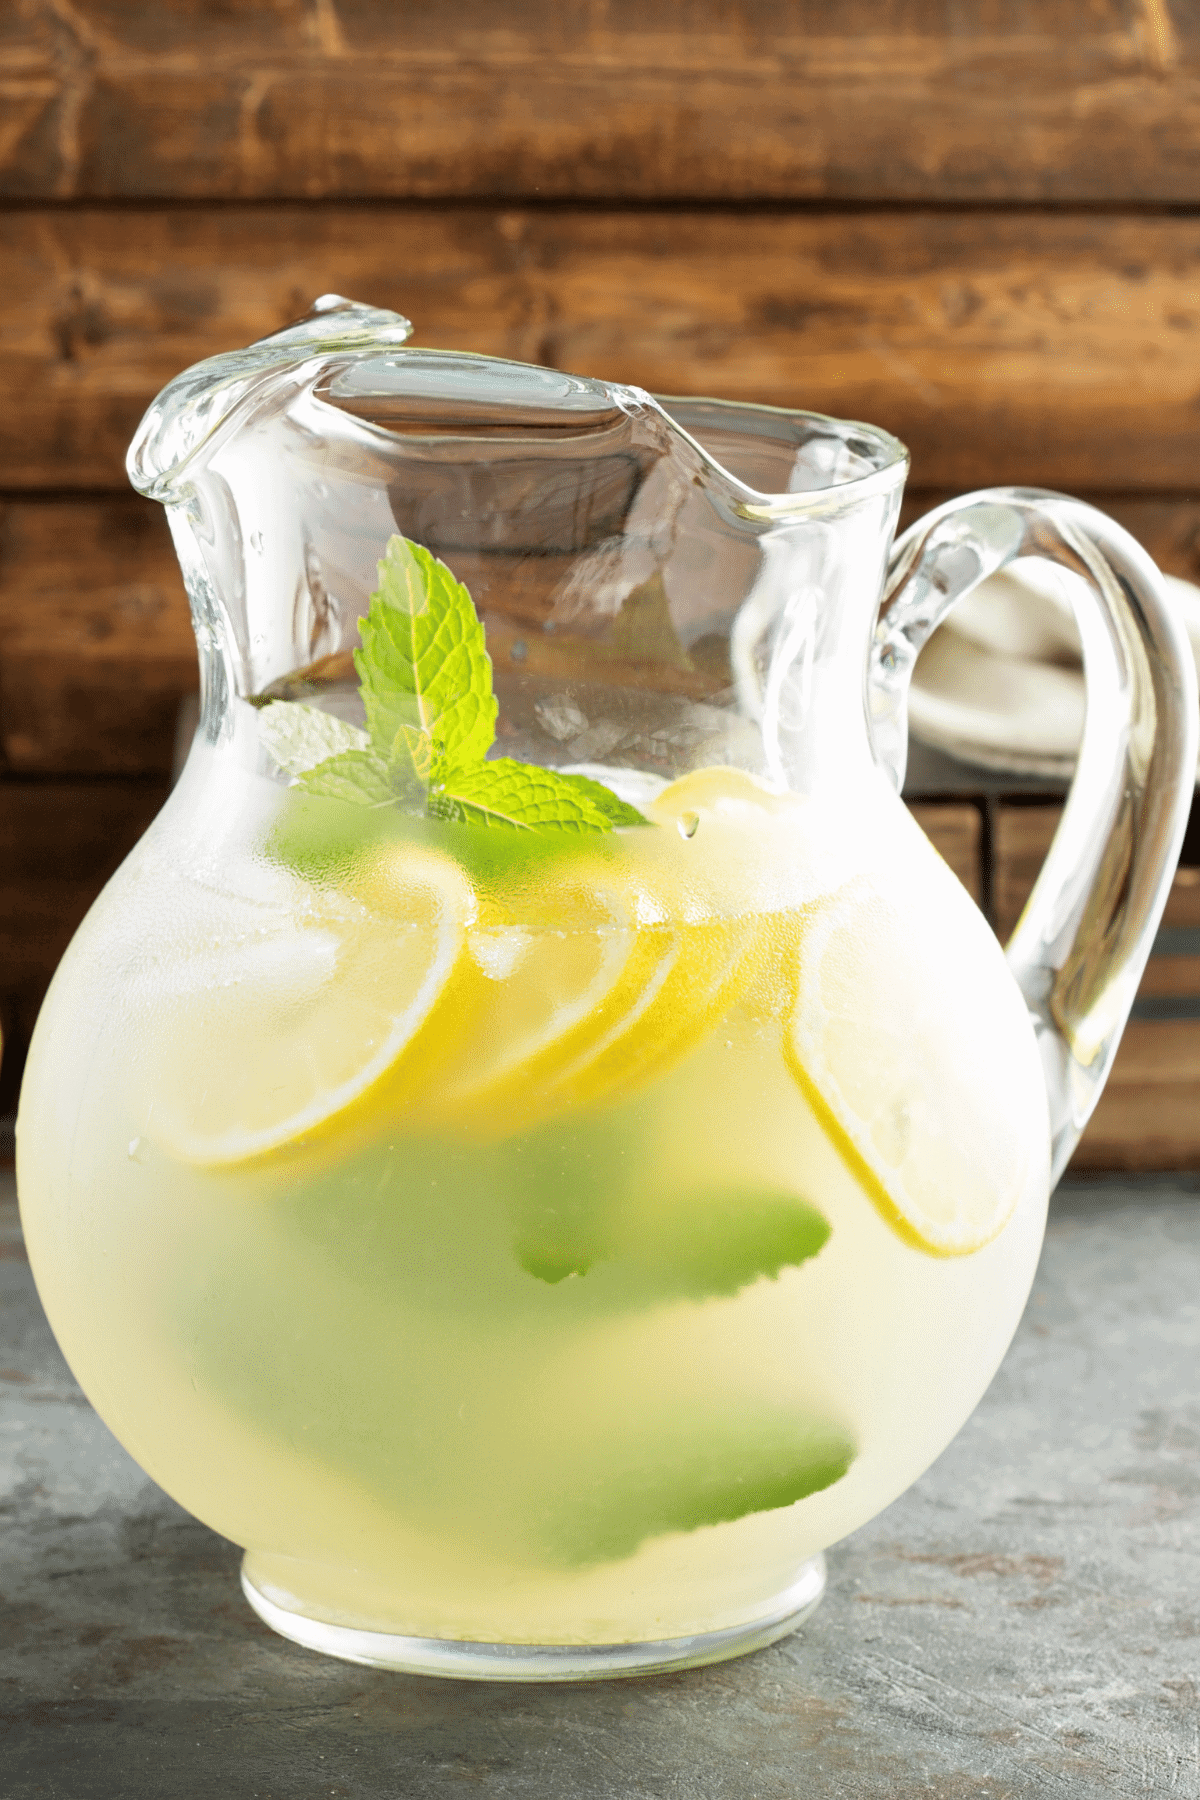 A pitcher full of homemade lemonade, garnished with lemon slices and fresh mint